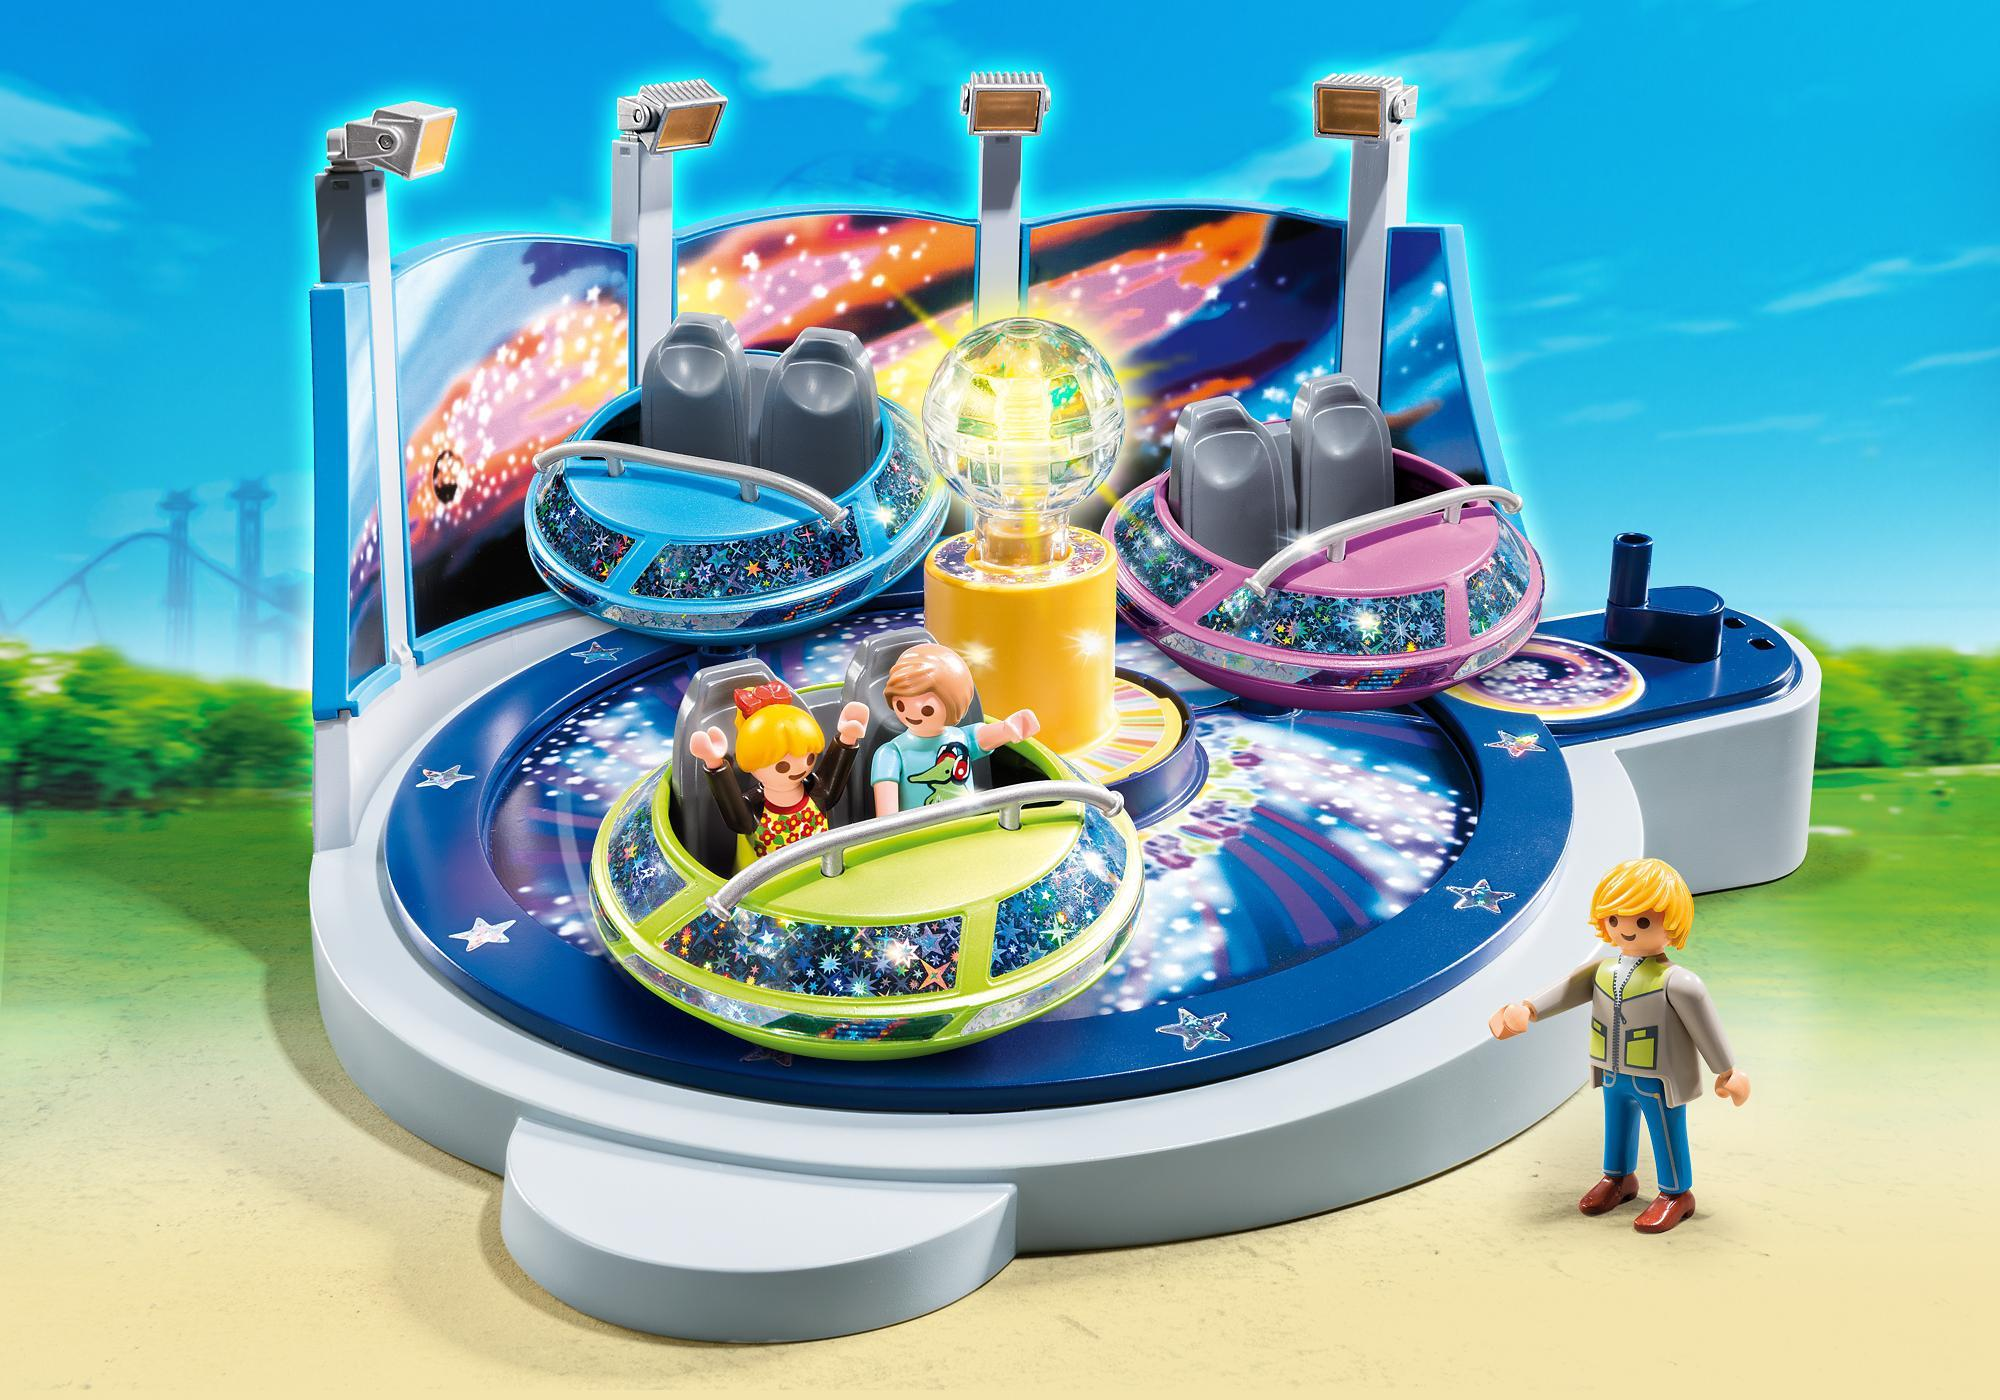 http://media.playmobil.com/i/playmobil/5554_product_detail/Spinning Spaceship Ride with Lights